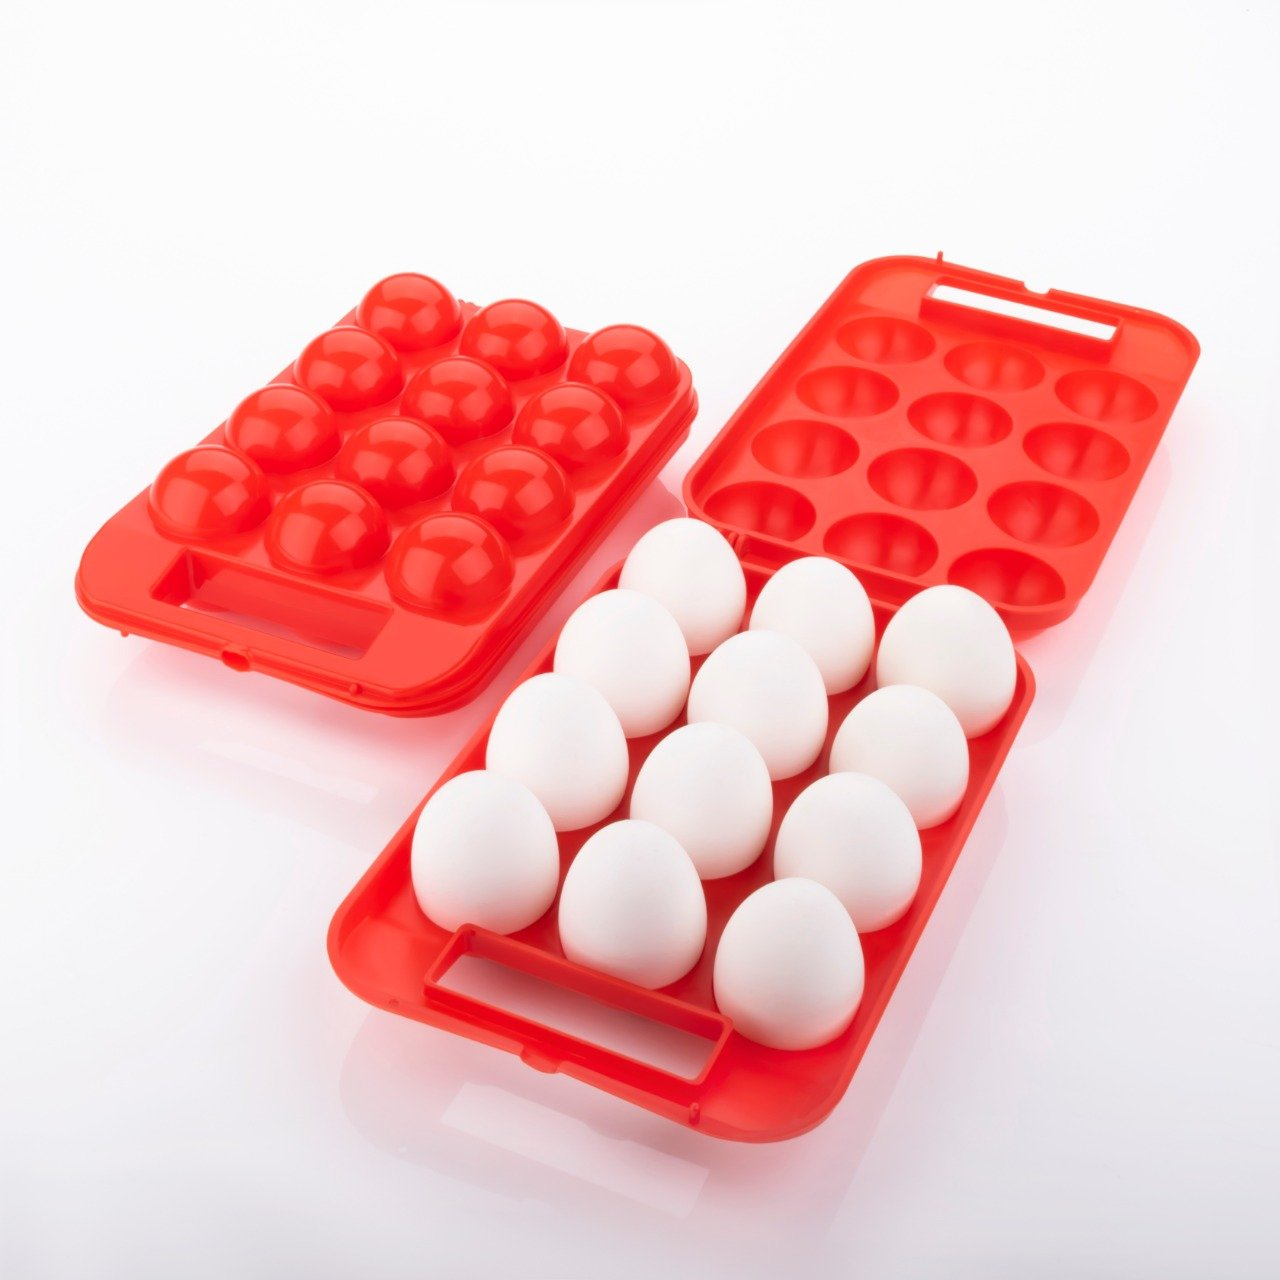 2171 Plastic Egg Carry Tray Holder Carrier Storage Box -